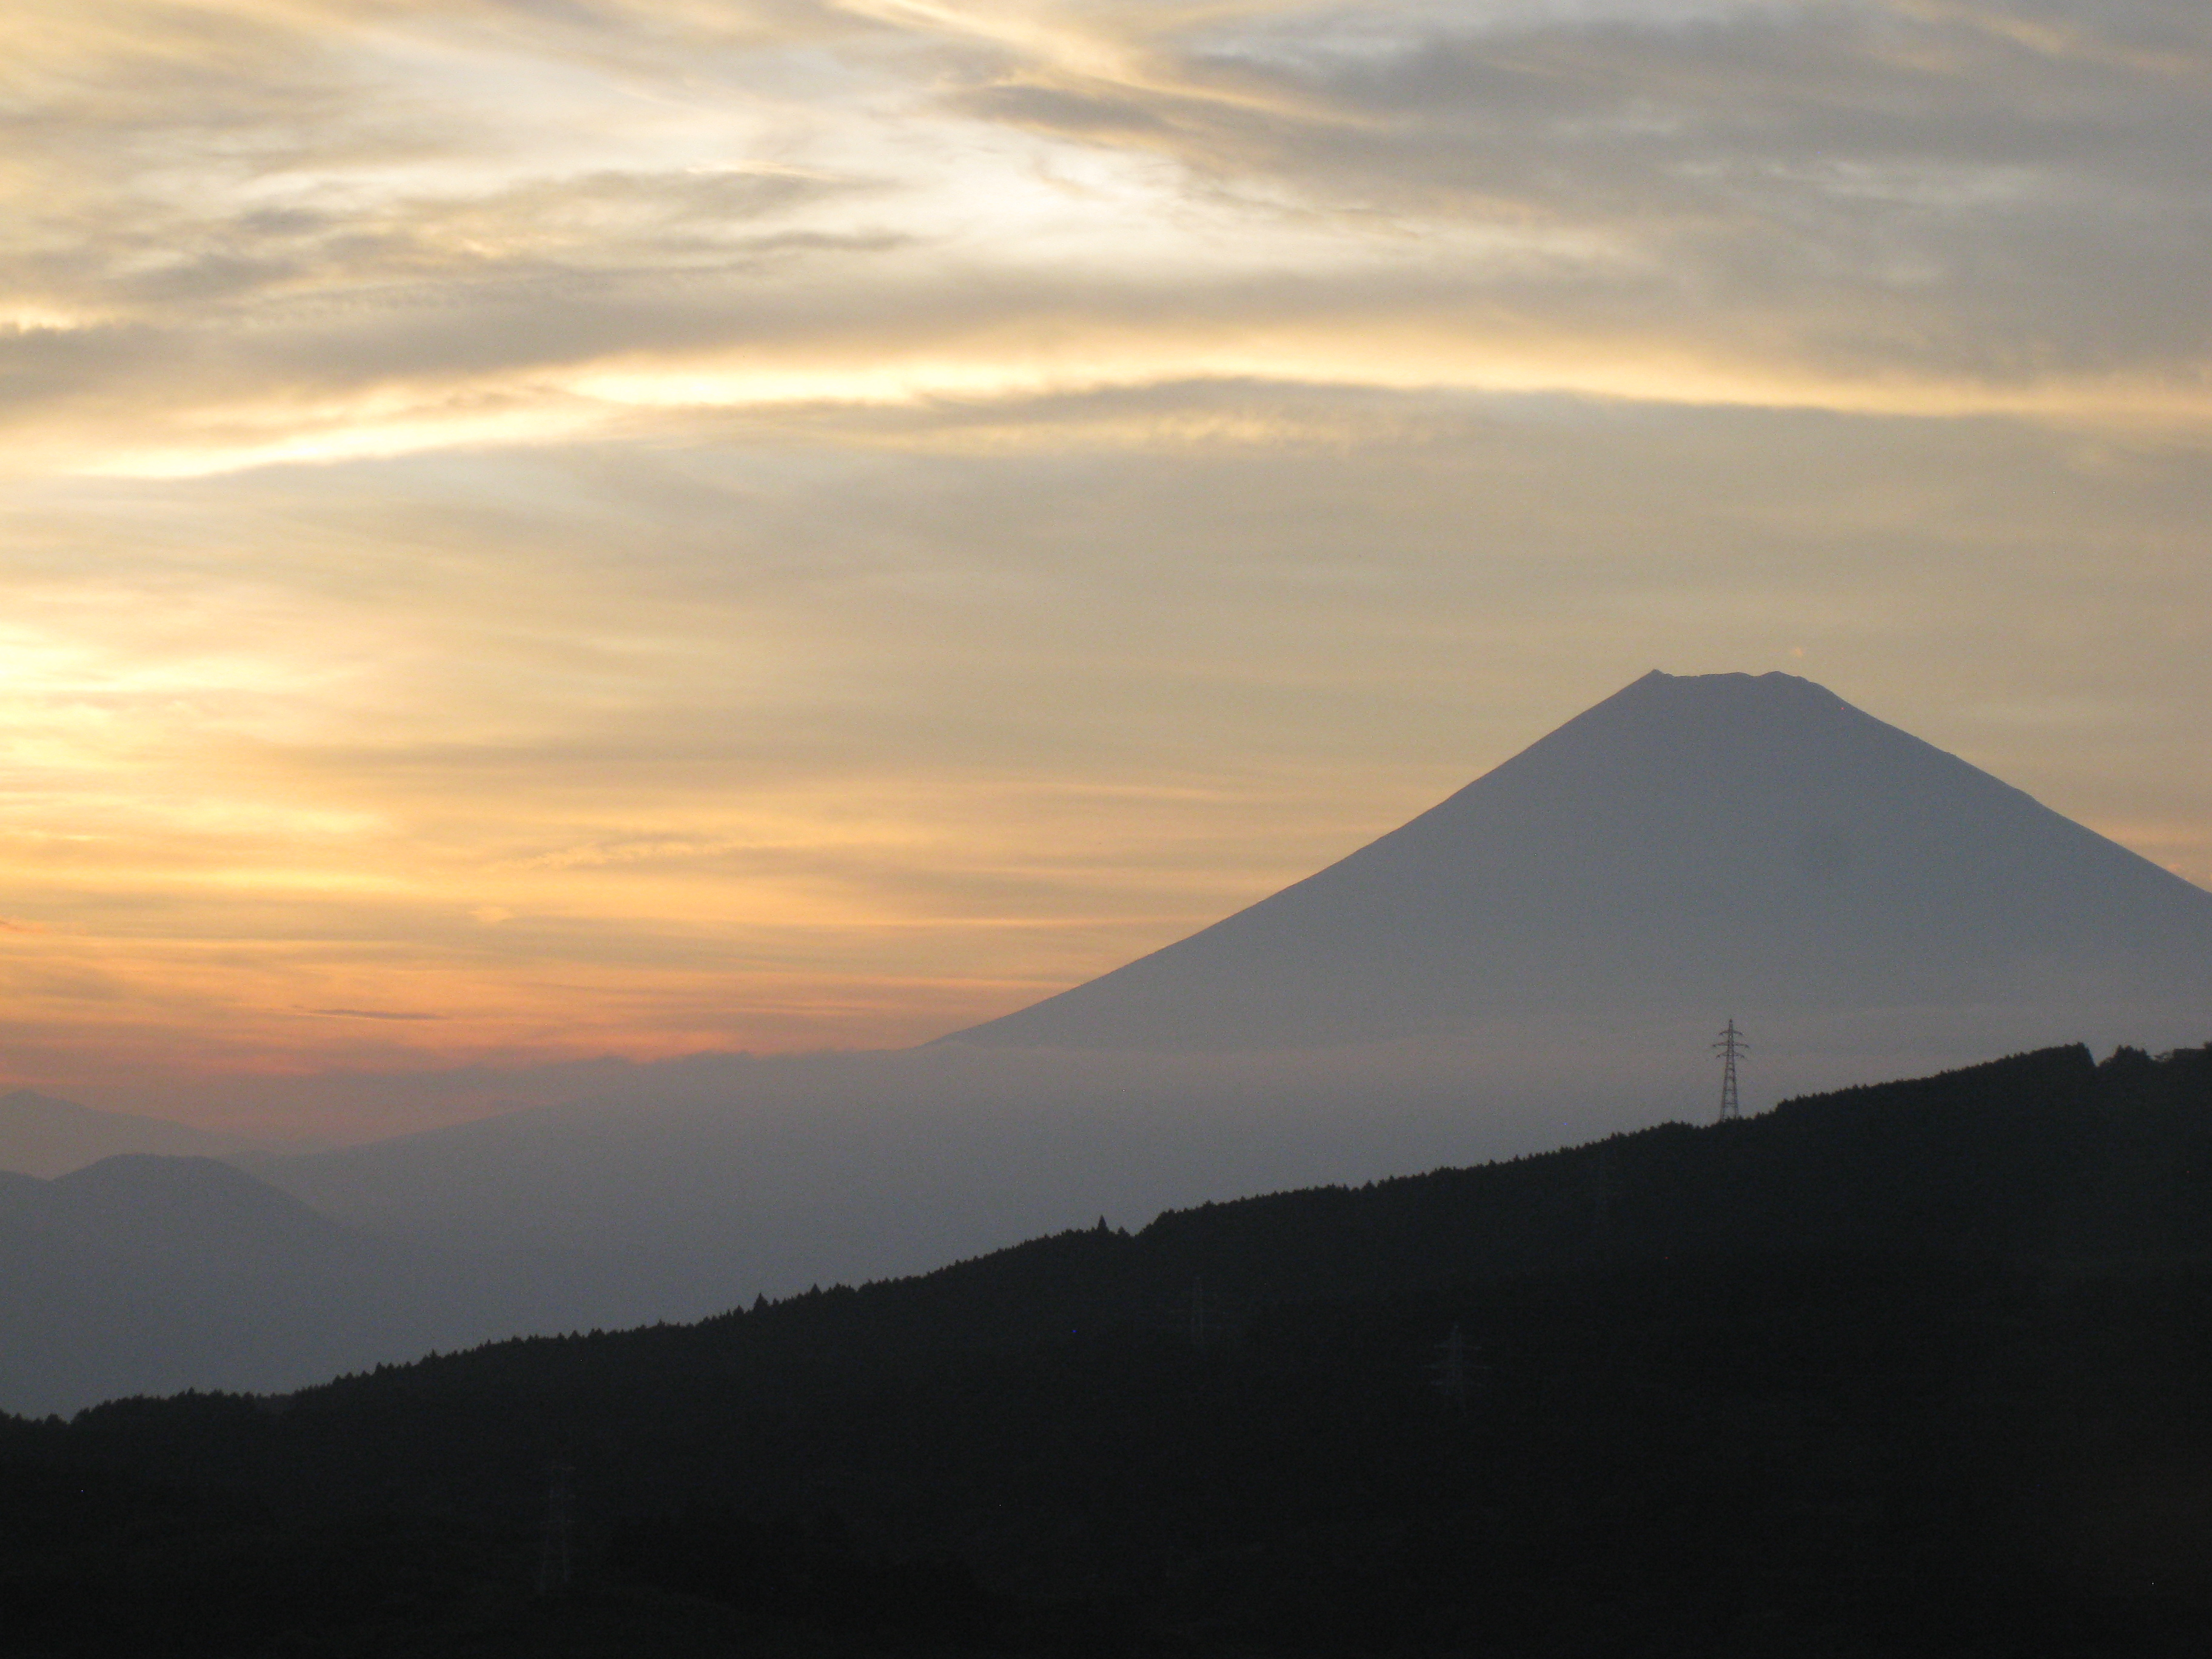 Early morning Mt. Fuji from Hakone